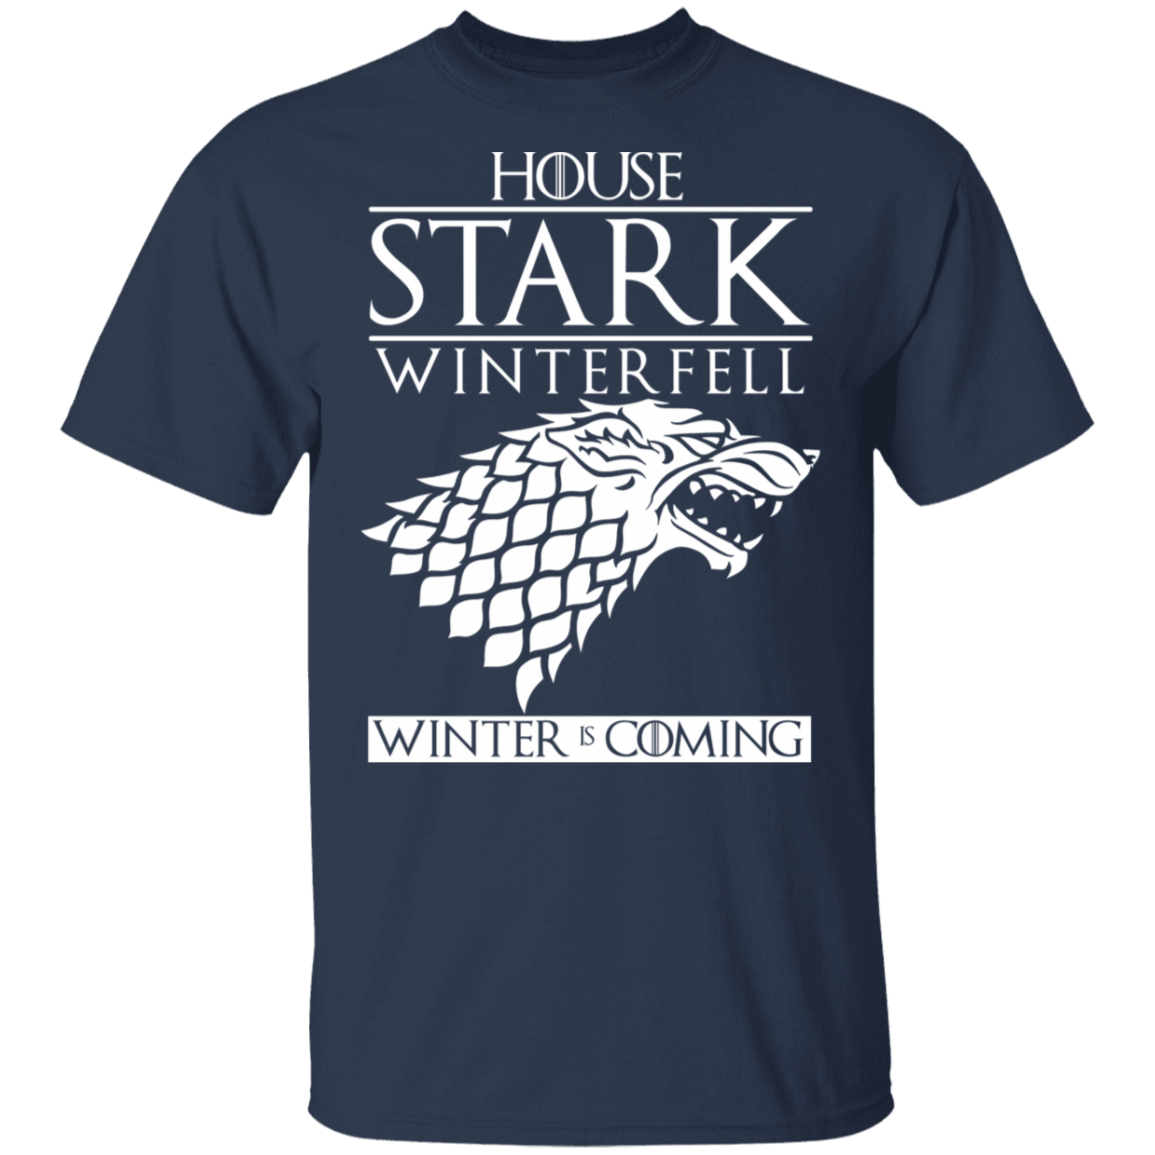 House Stark Winterfell Winter Is Coming T-Shirts, Hoodies 22-111-80162972-250 - Tee Ript